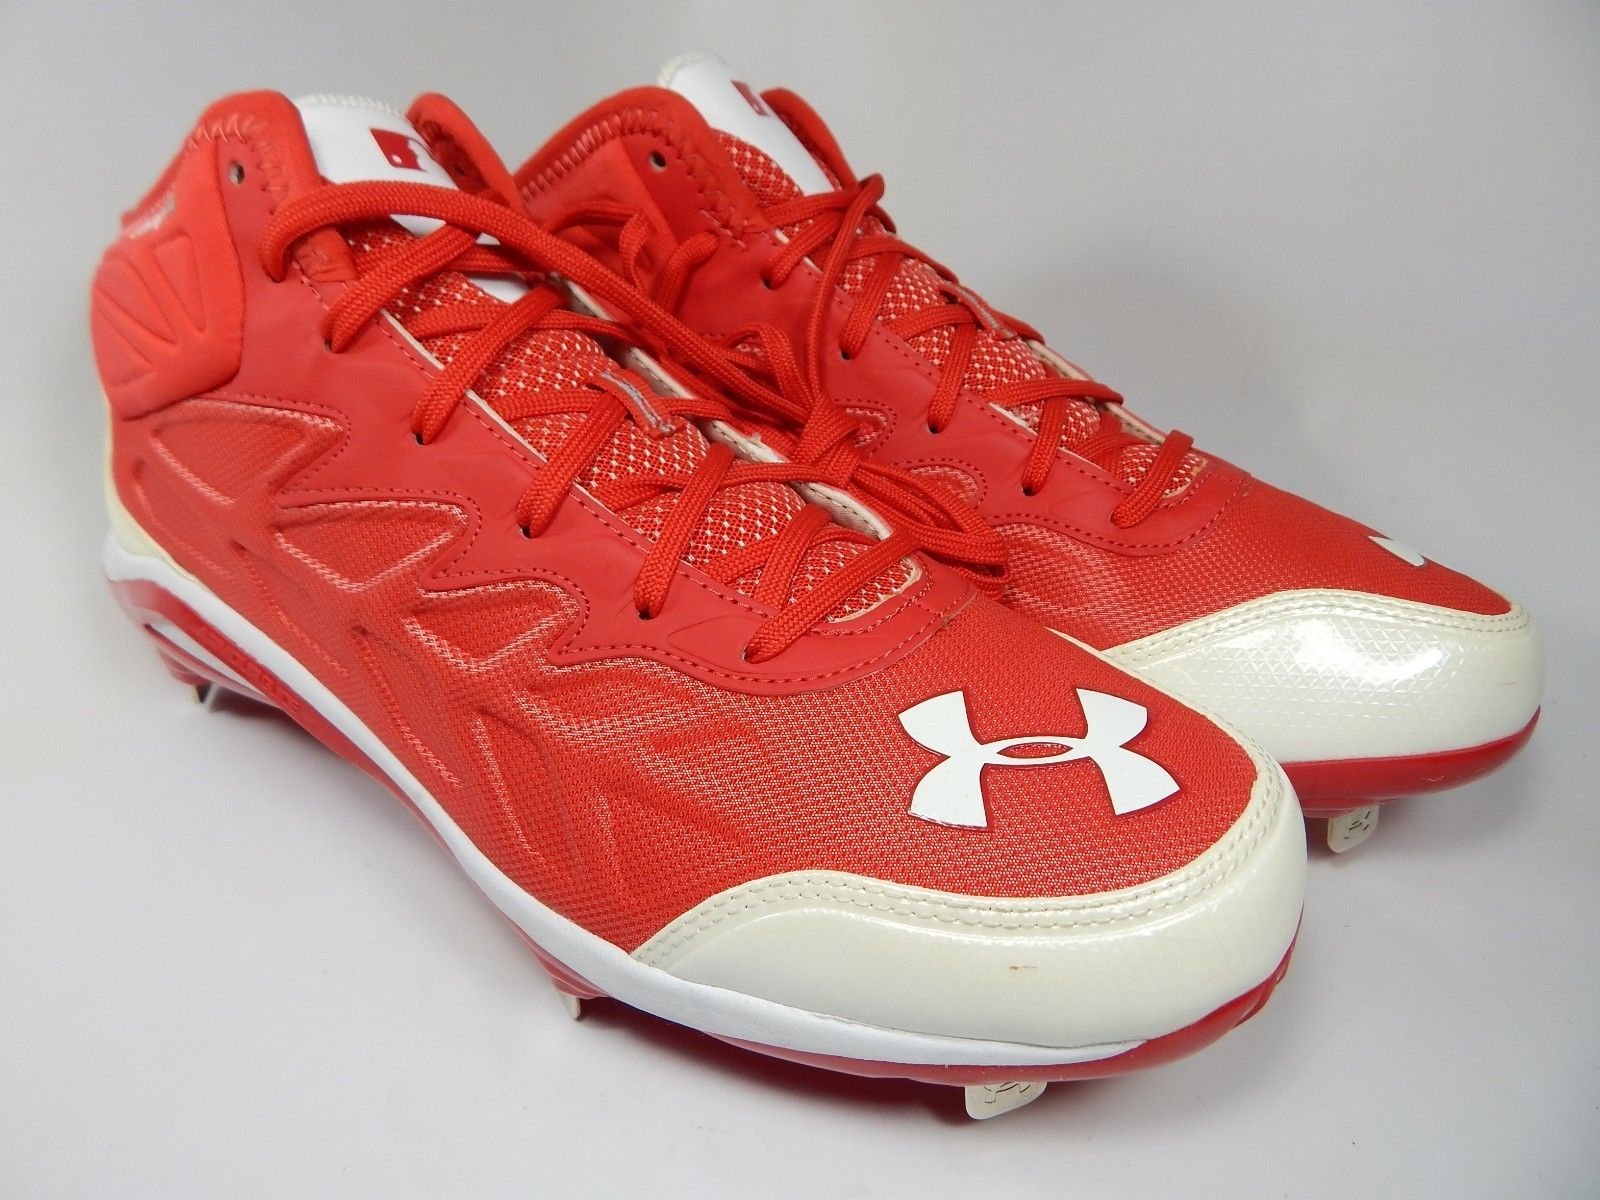 pick up eb9a9 2b655 57. 57. Previous. Under Armour Heater ST Mid Top Size 12 M EU 46 Metal  Baseball Cleats 1248197-